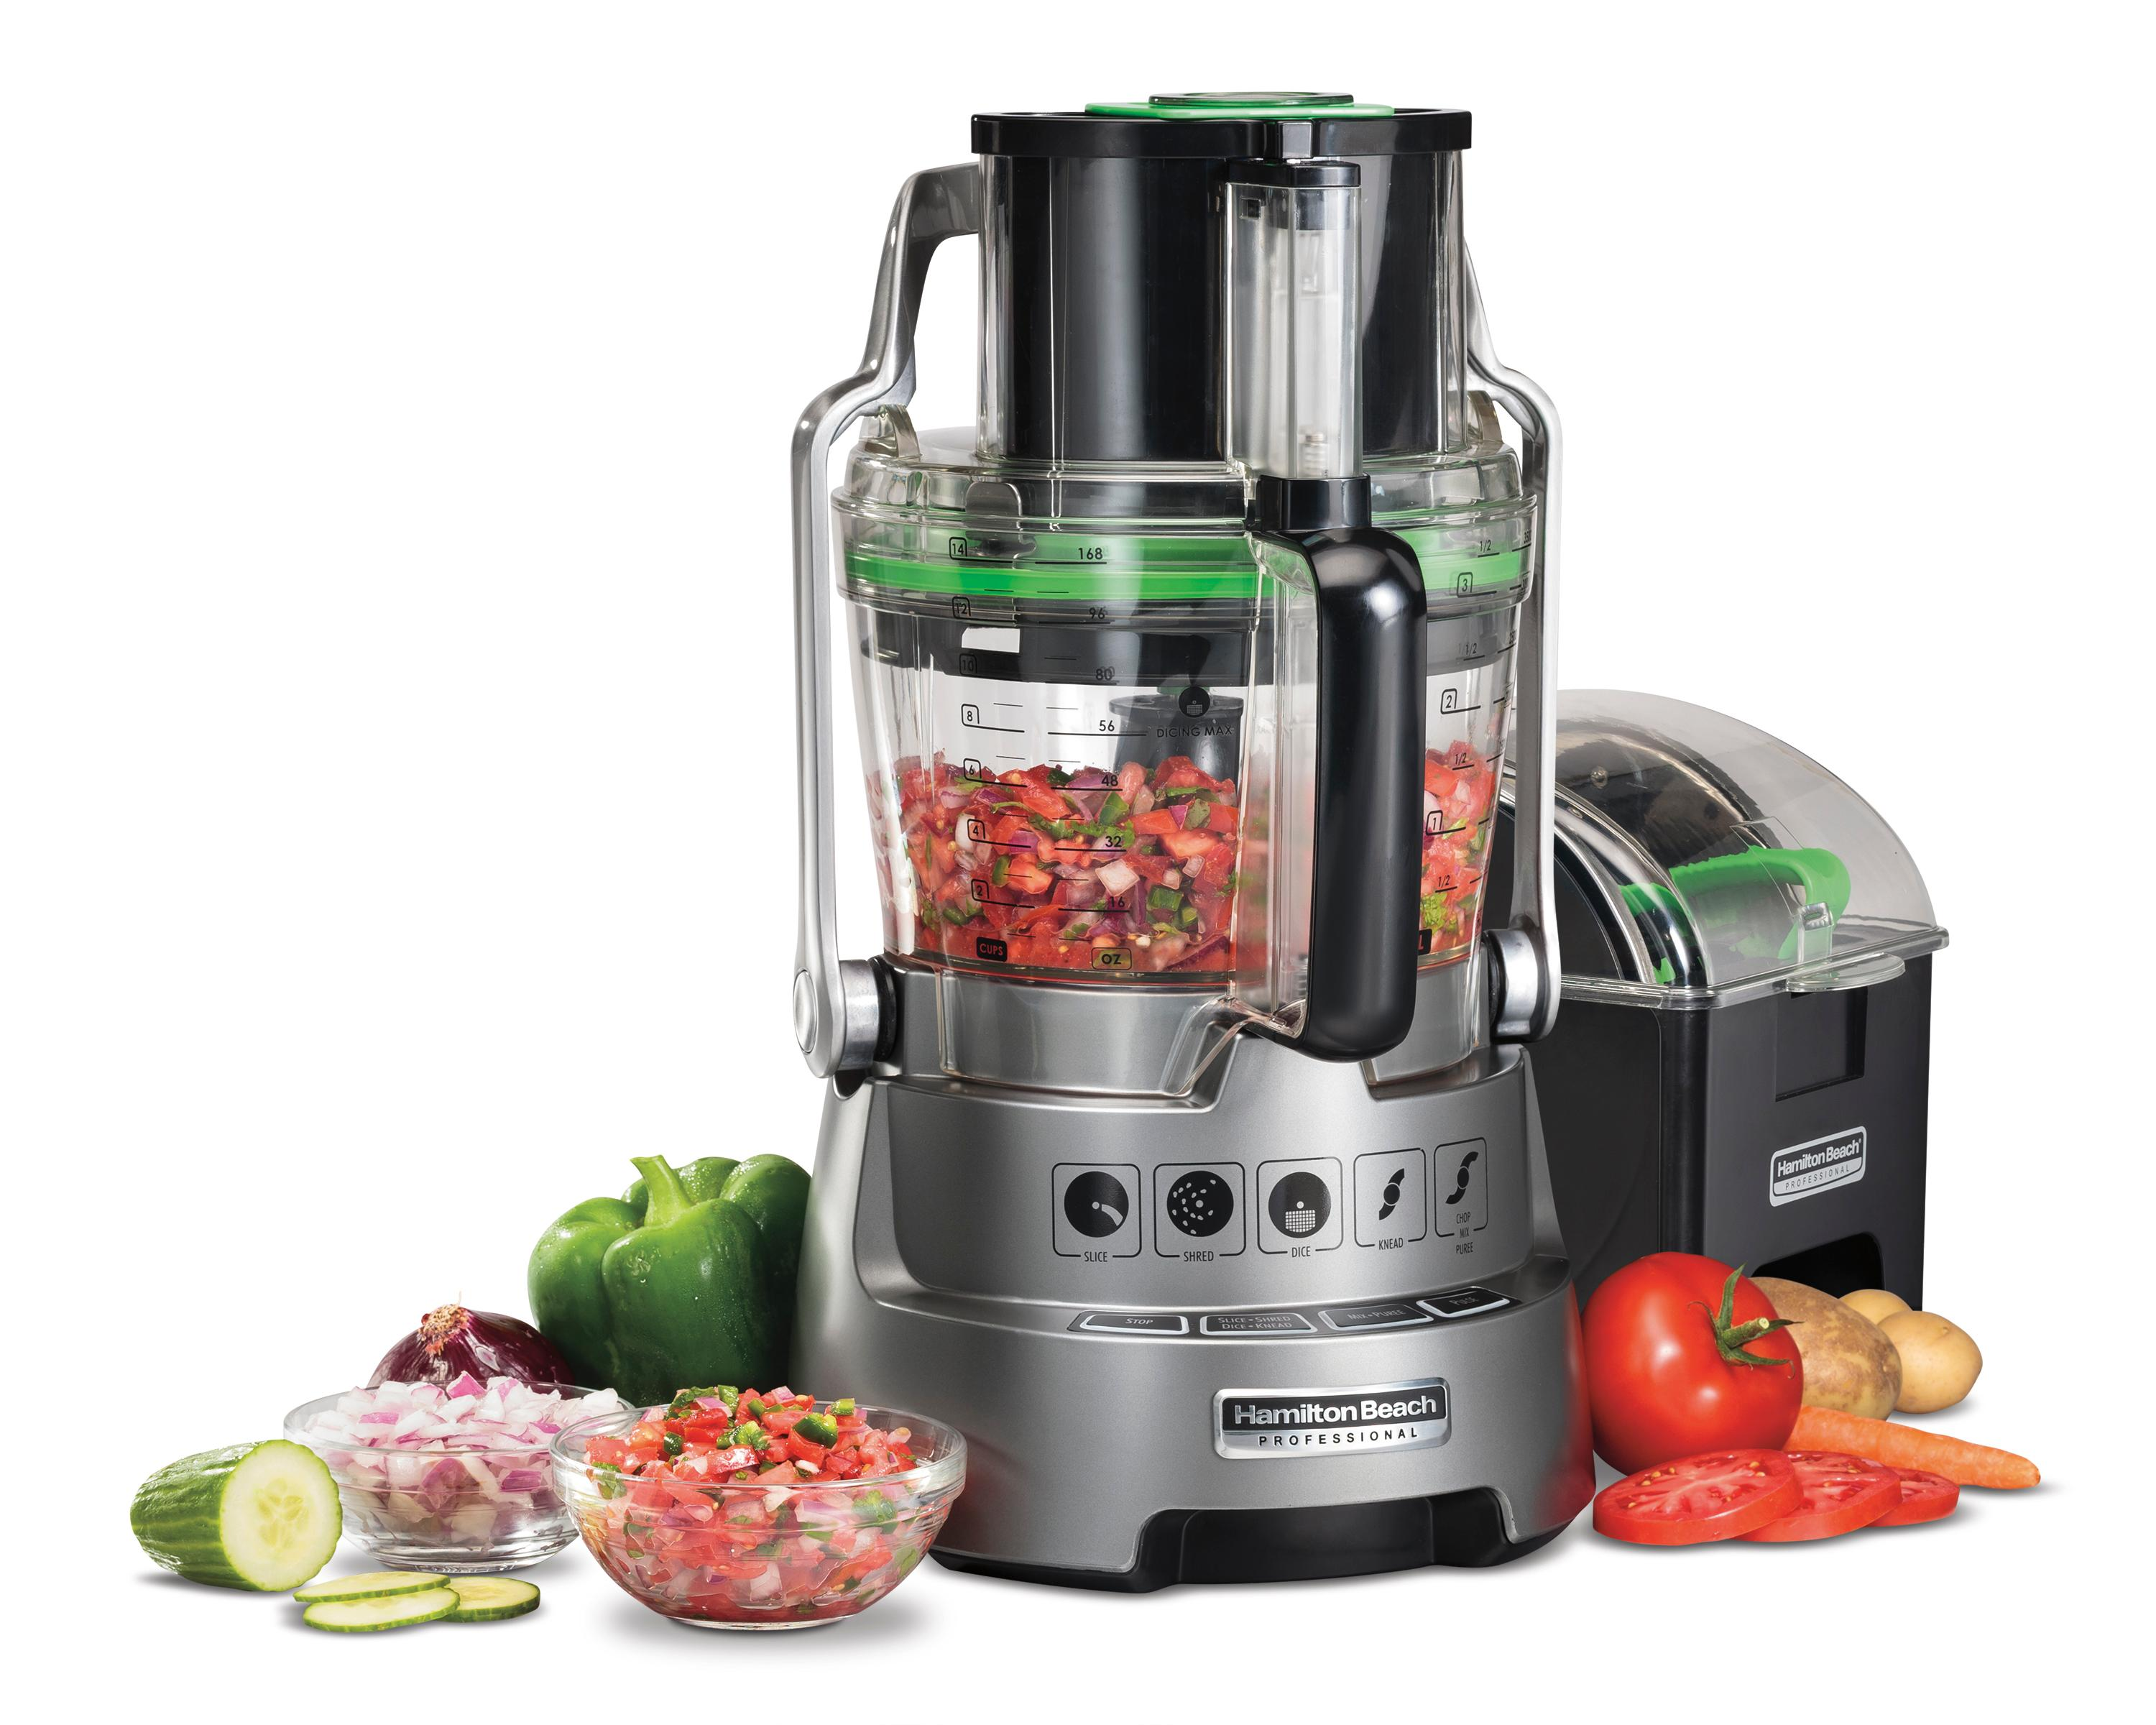 Hamilton Beach Professional 70825c Stack And Snap Dicing